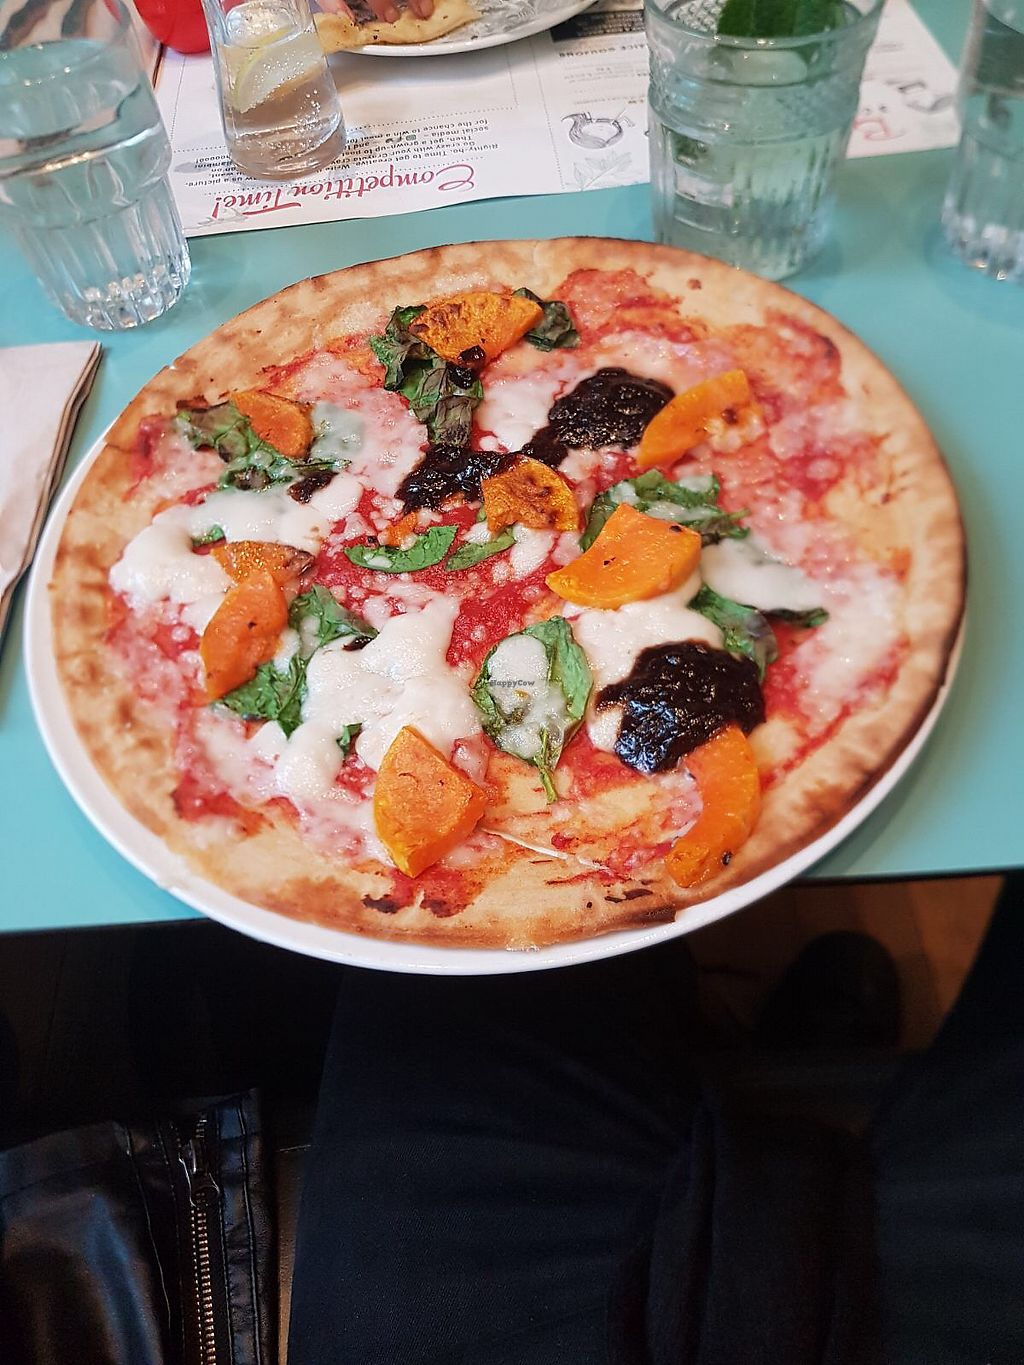 """Photo of Zizzi - Covent Garden  by <a href=""""/members/profile/lysi"""">lysi</a> <br/>Vegan, gluten free pizza <br/> April 9, 2018  - <a href='/contact/abuse/image/77479/382807'>Report</a>"""